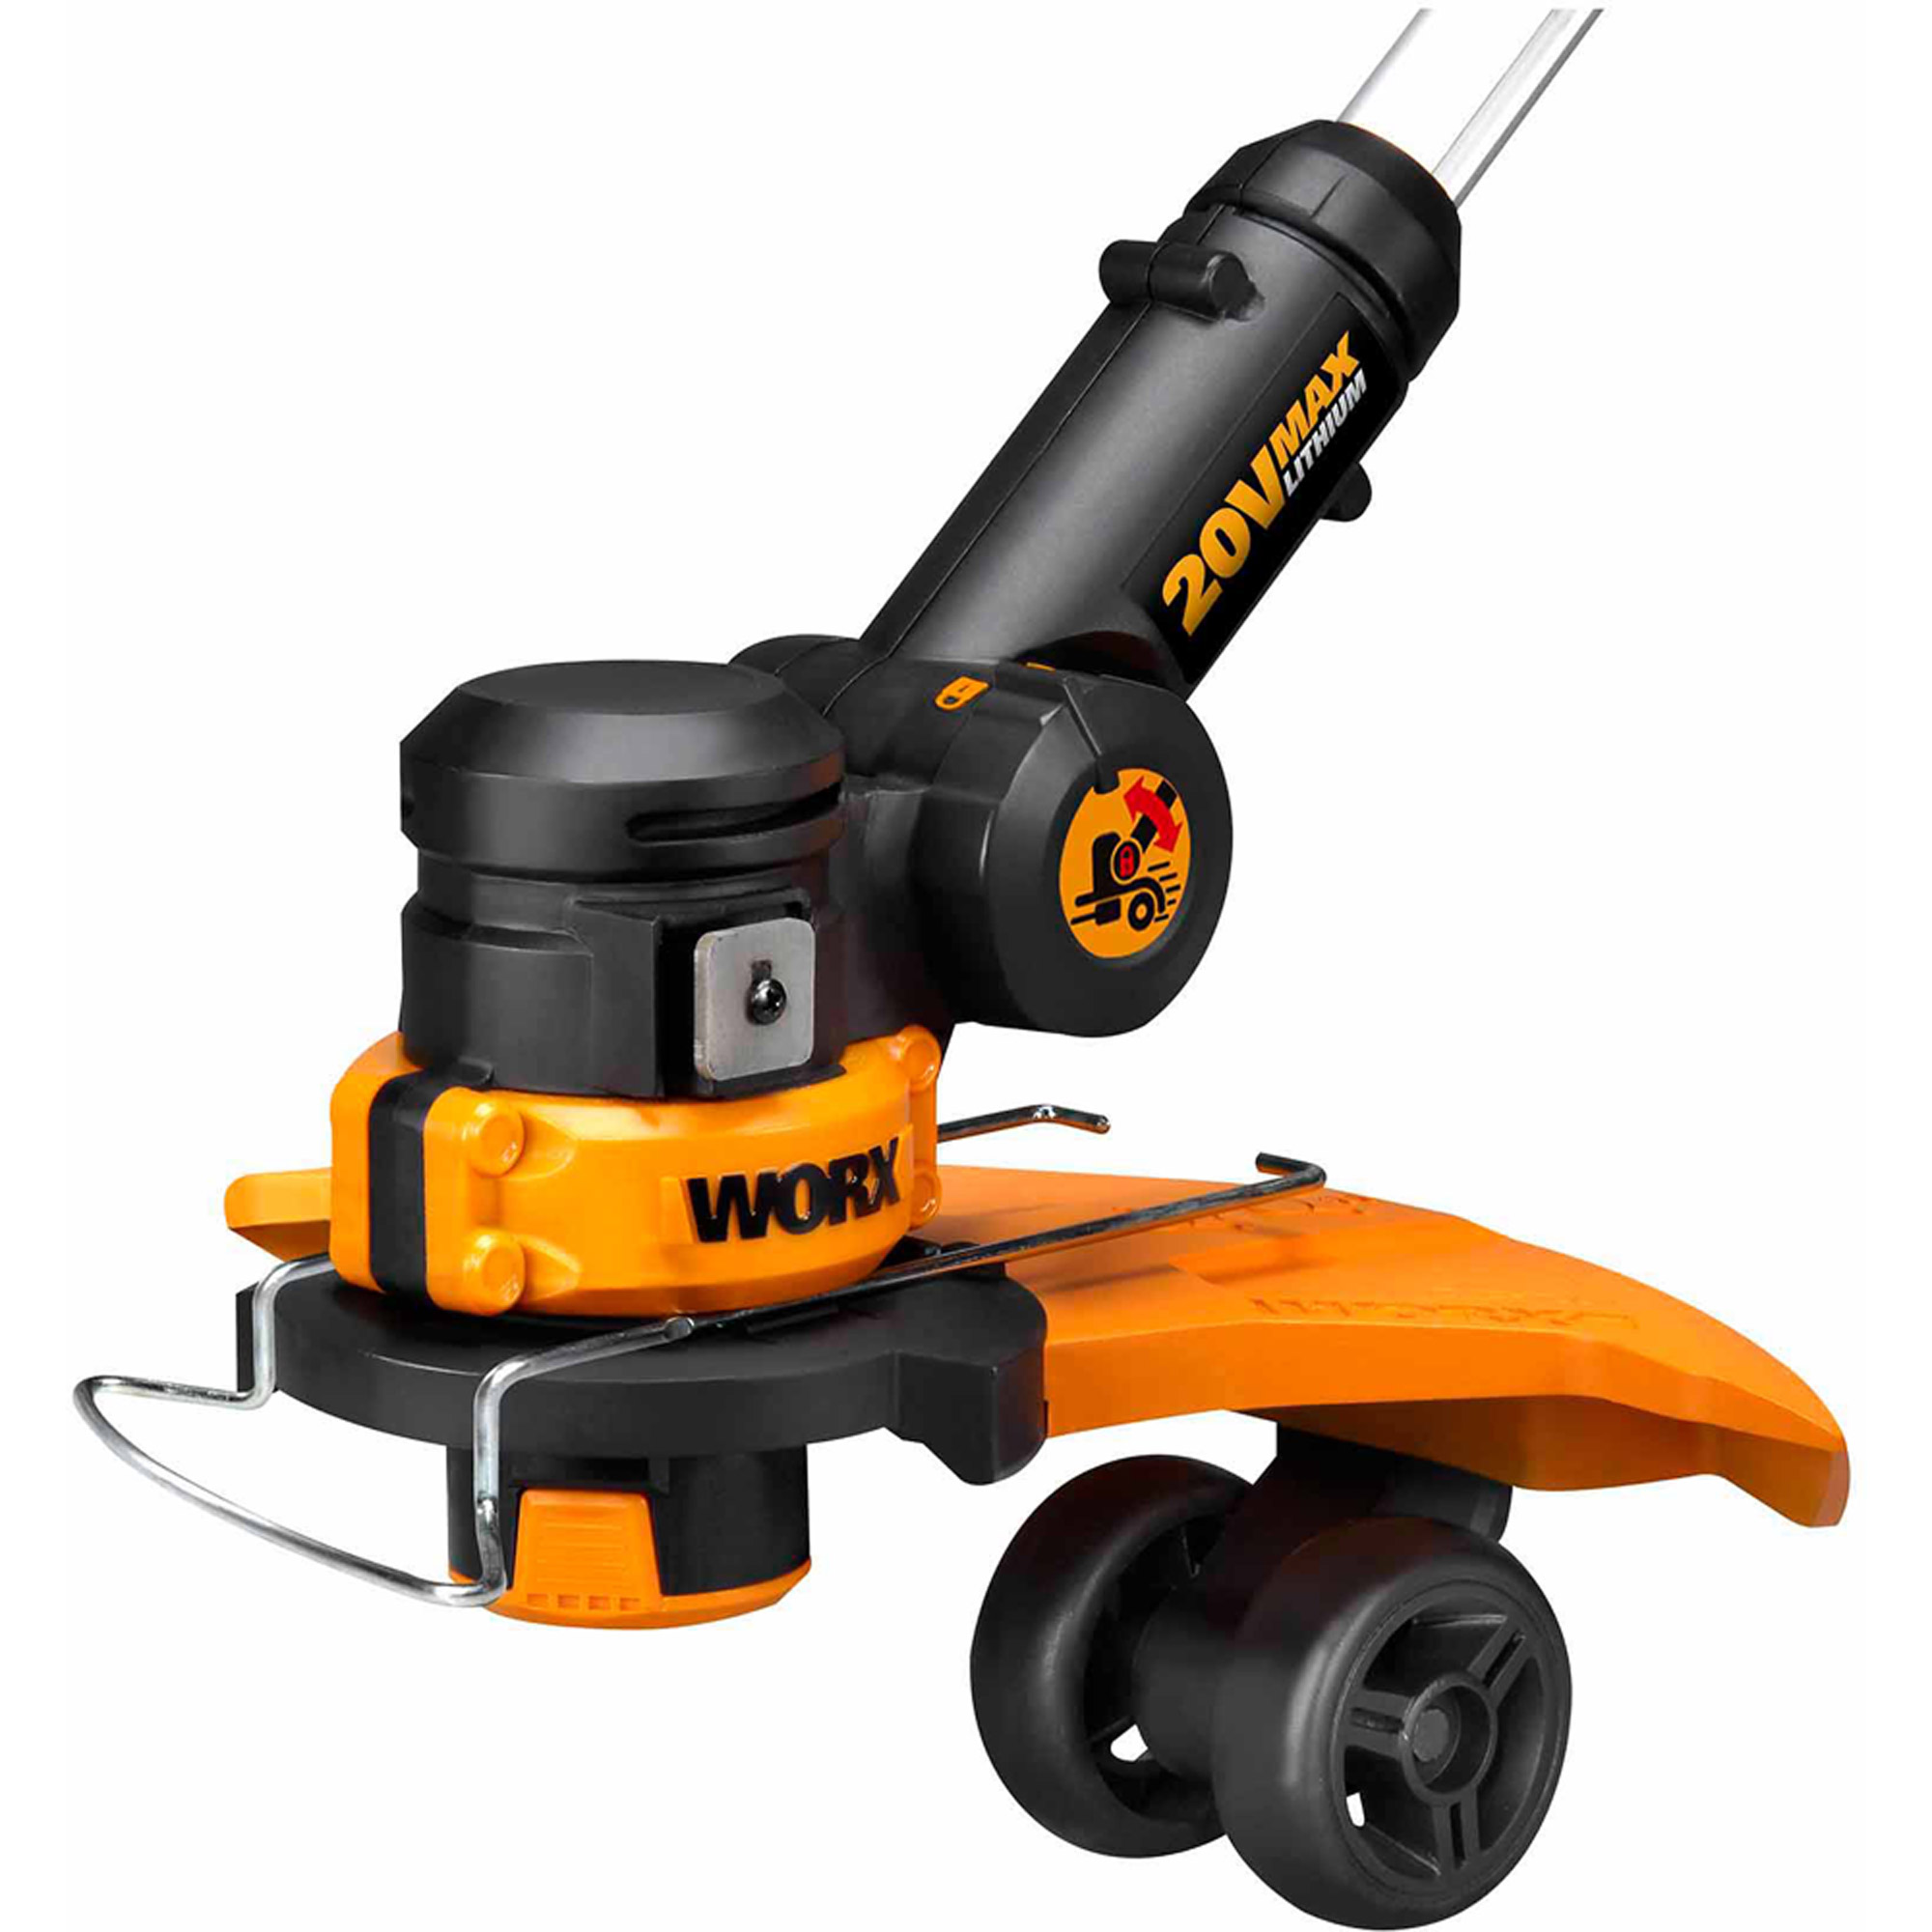 Worx WG160 20V Cordless Lithium Ion 12 in Straight Shaft Trimmer